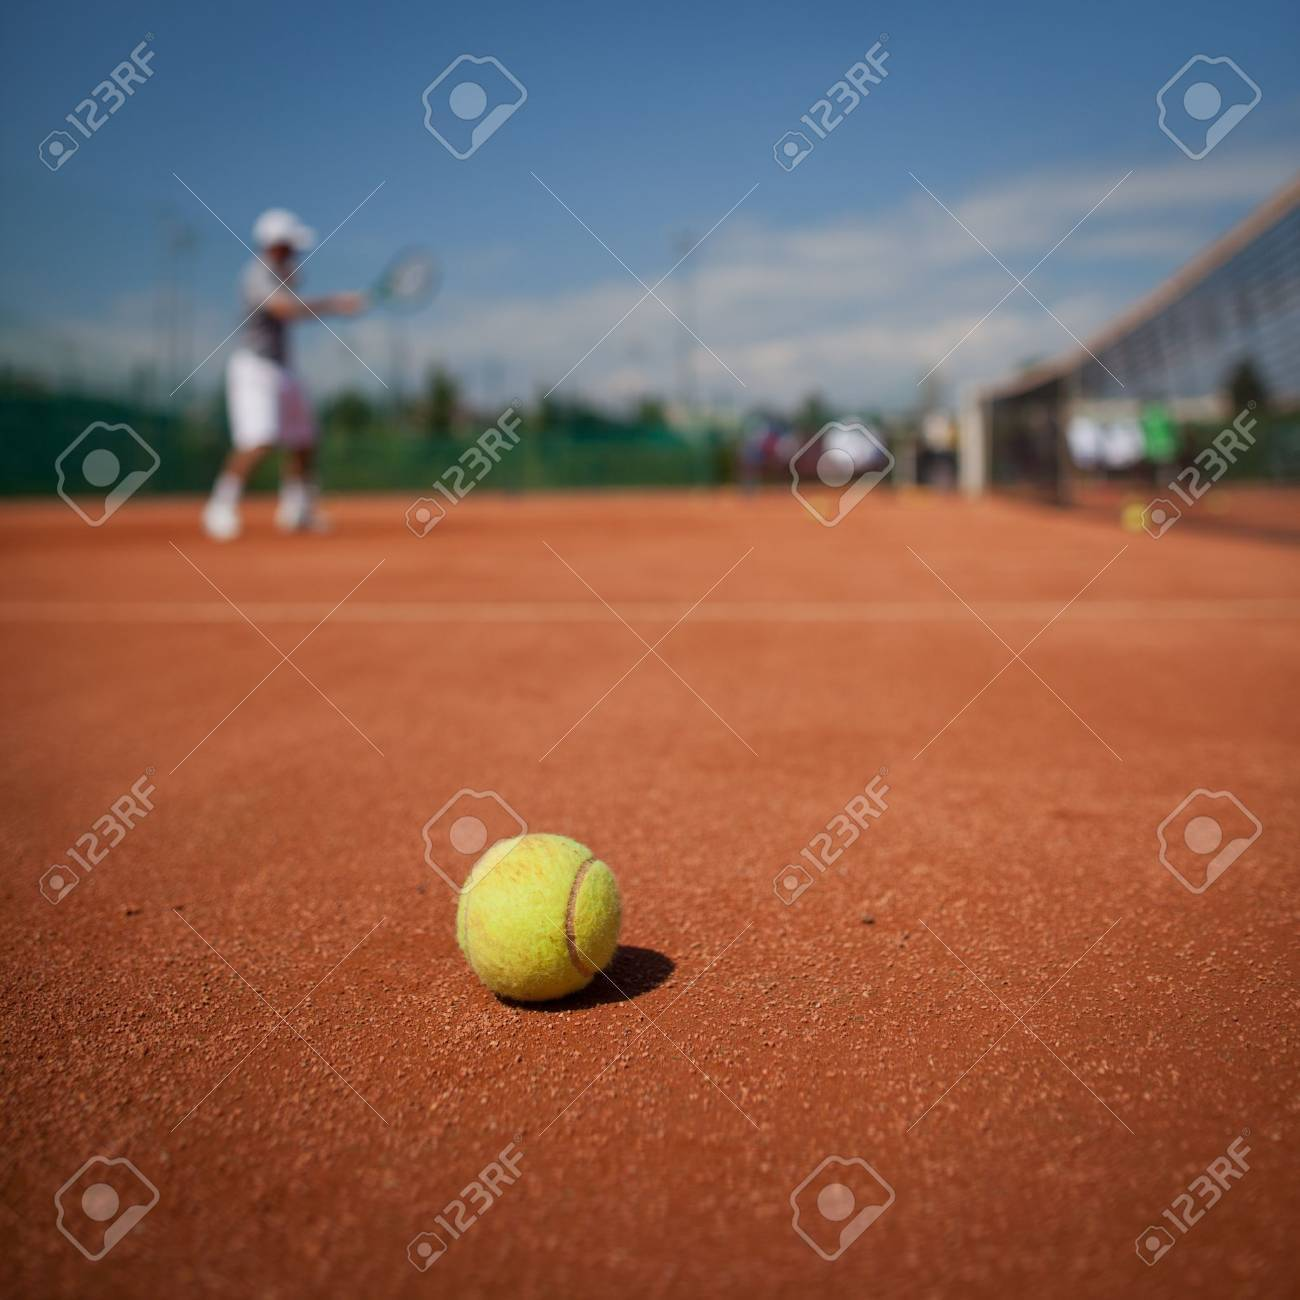 Tennis player in action on tennis court (selective focus, focus on ball in the foreground) Stock Photo - 10895256